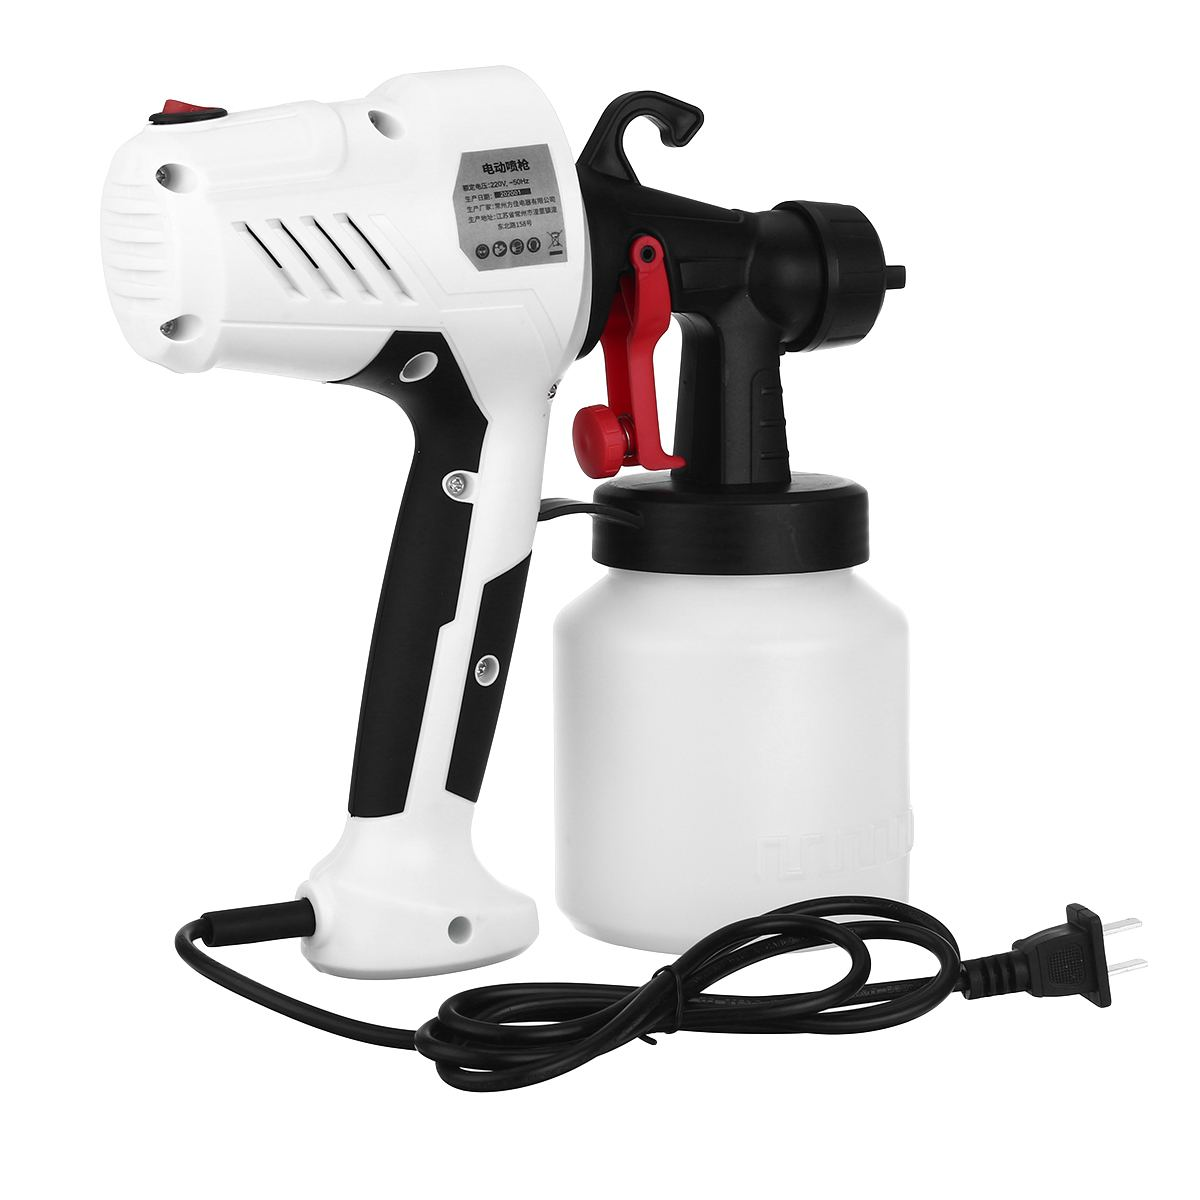 2 5MM Nozzle Spray Guns Paint 650W 220V 800ML High Power Spray Guns Home Electric Paint Sprayer Easy Spraying Clean